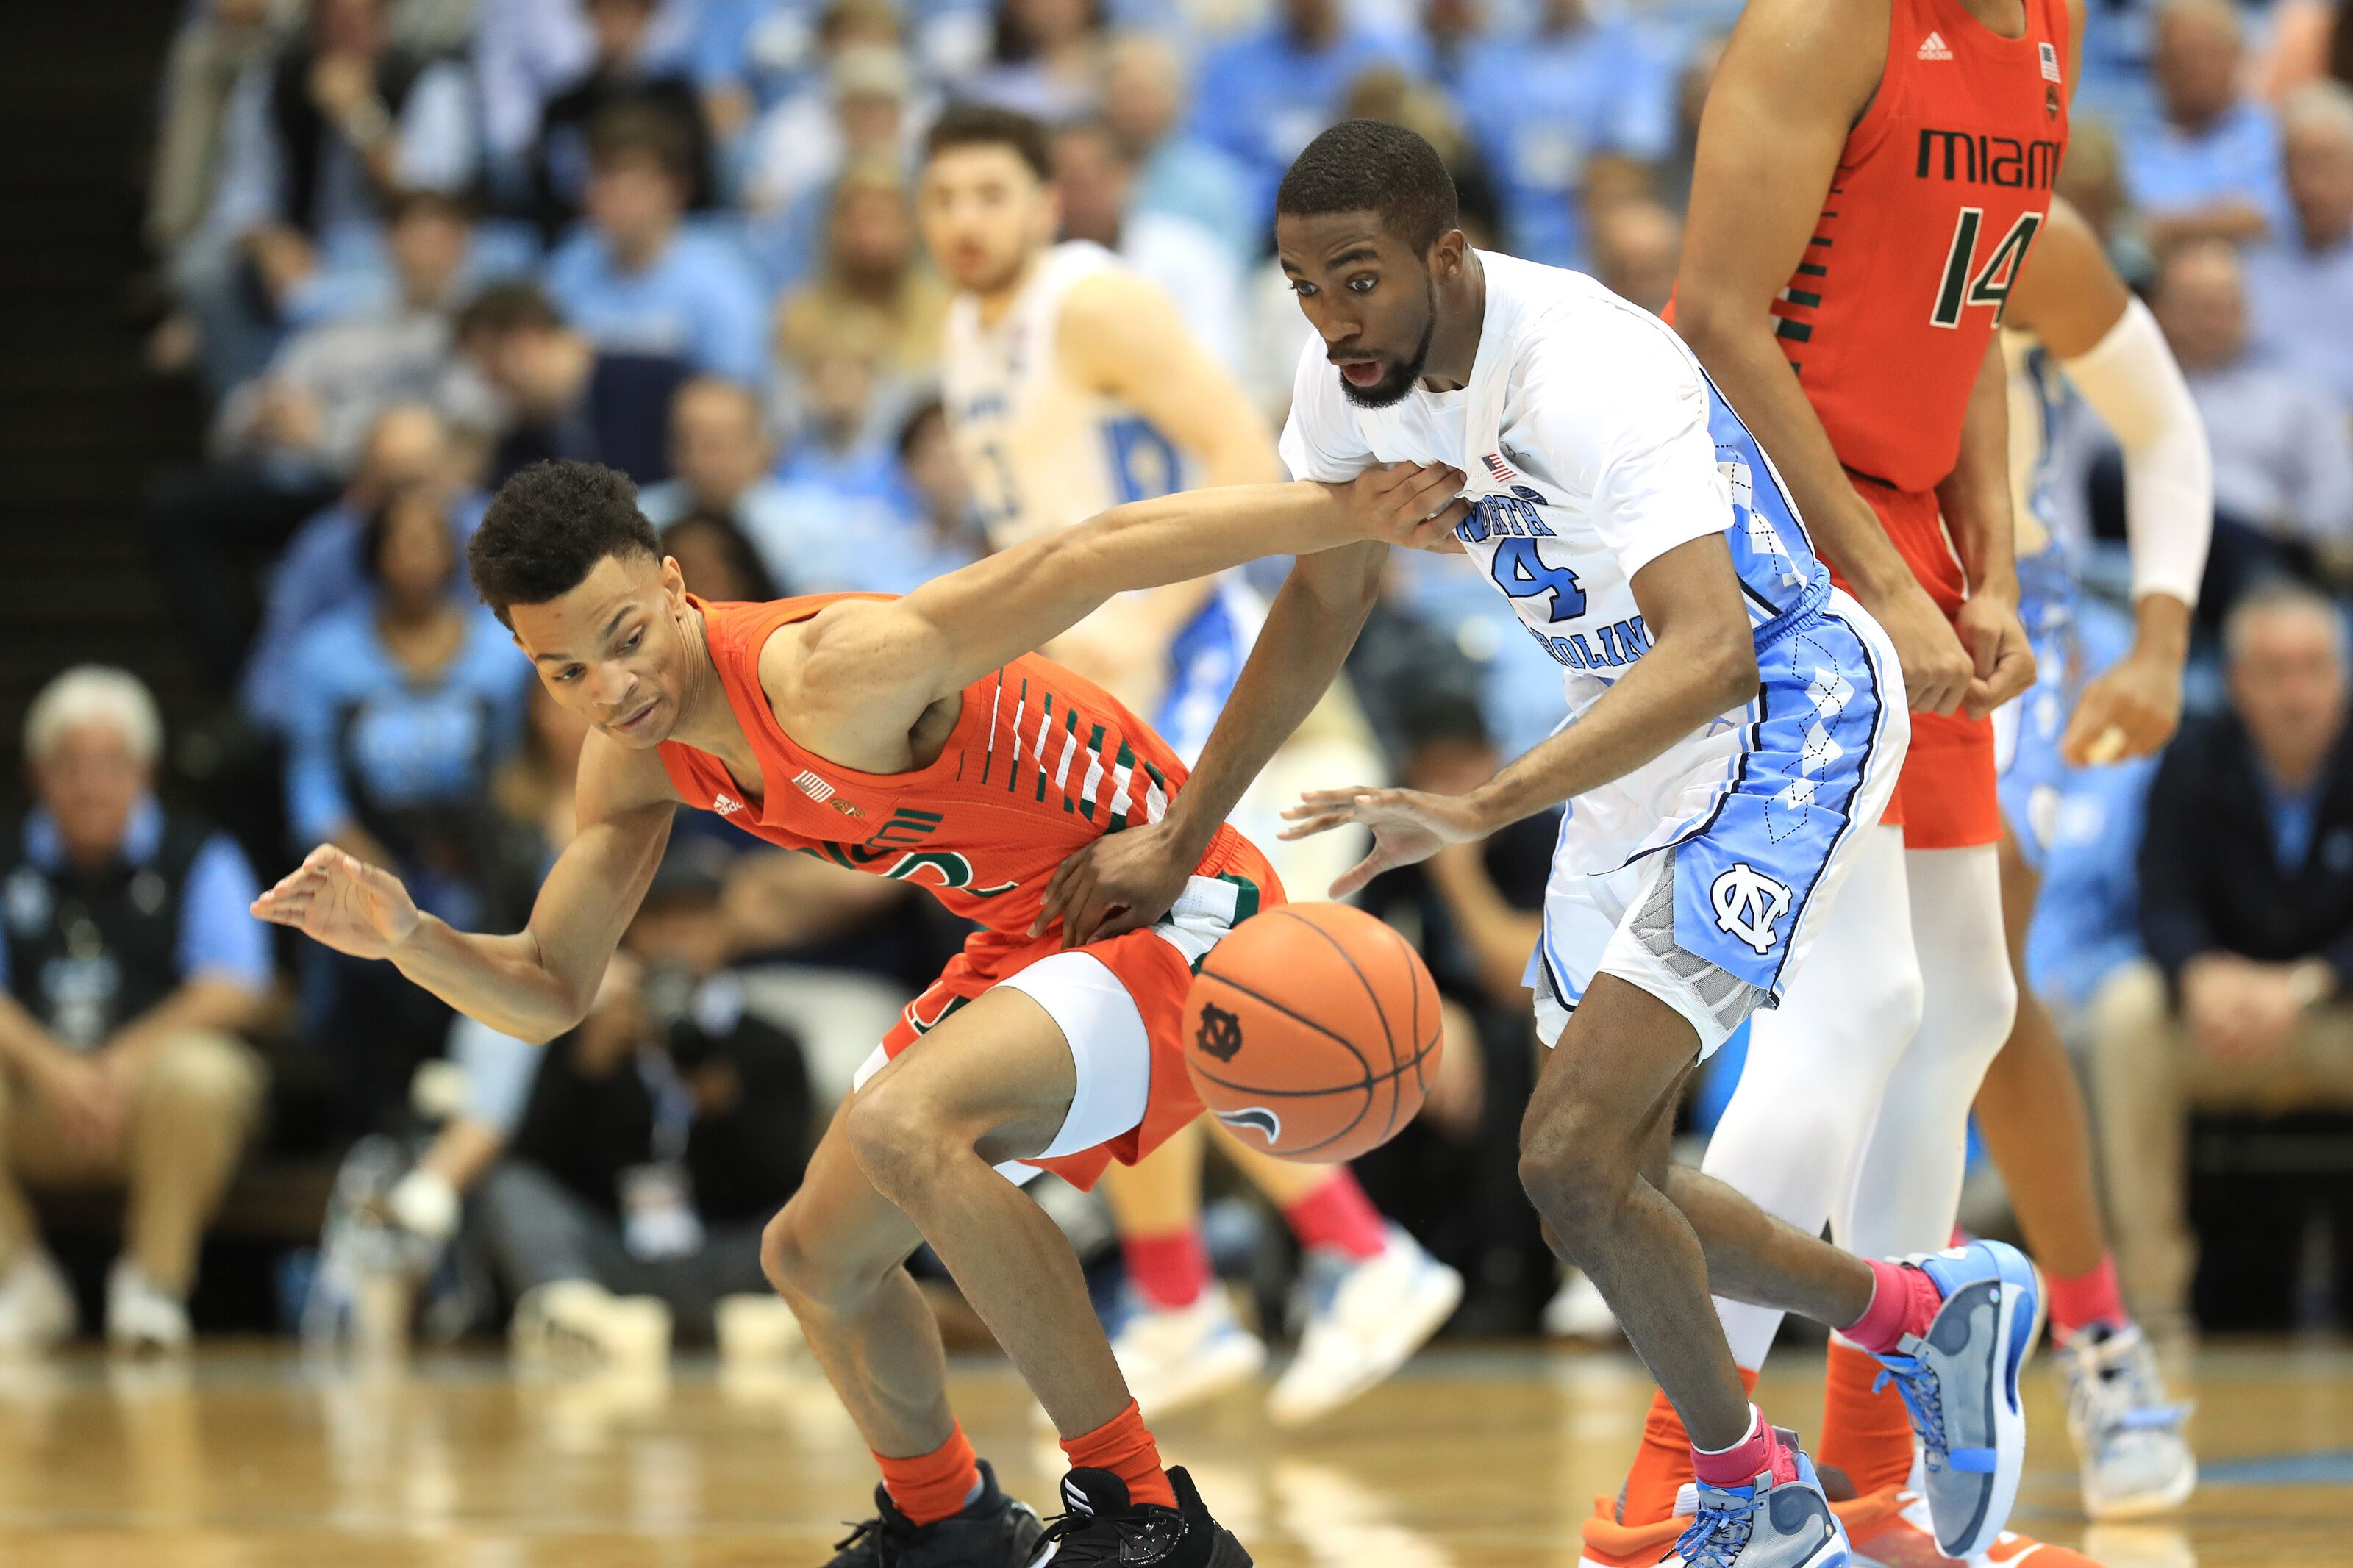 Depleted Miami Basketball overwhelmed in loss at North Carolina